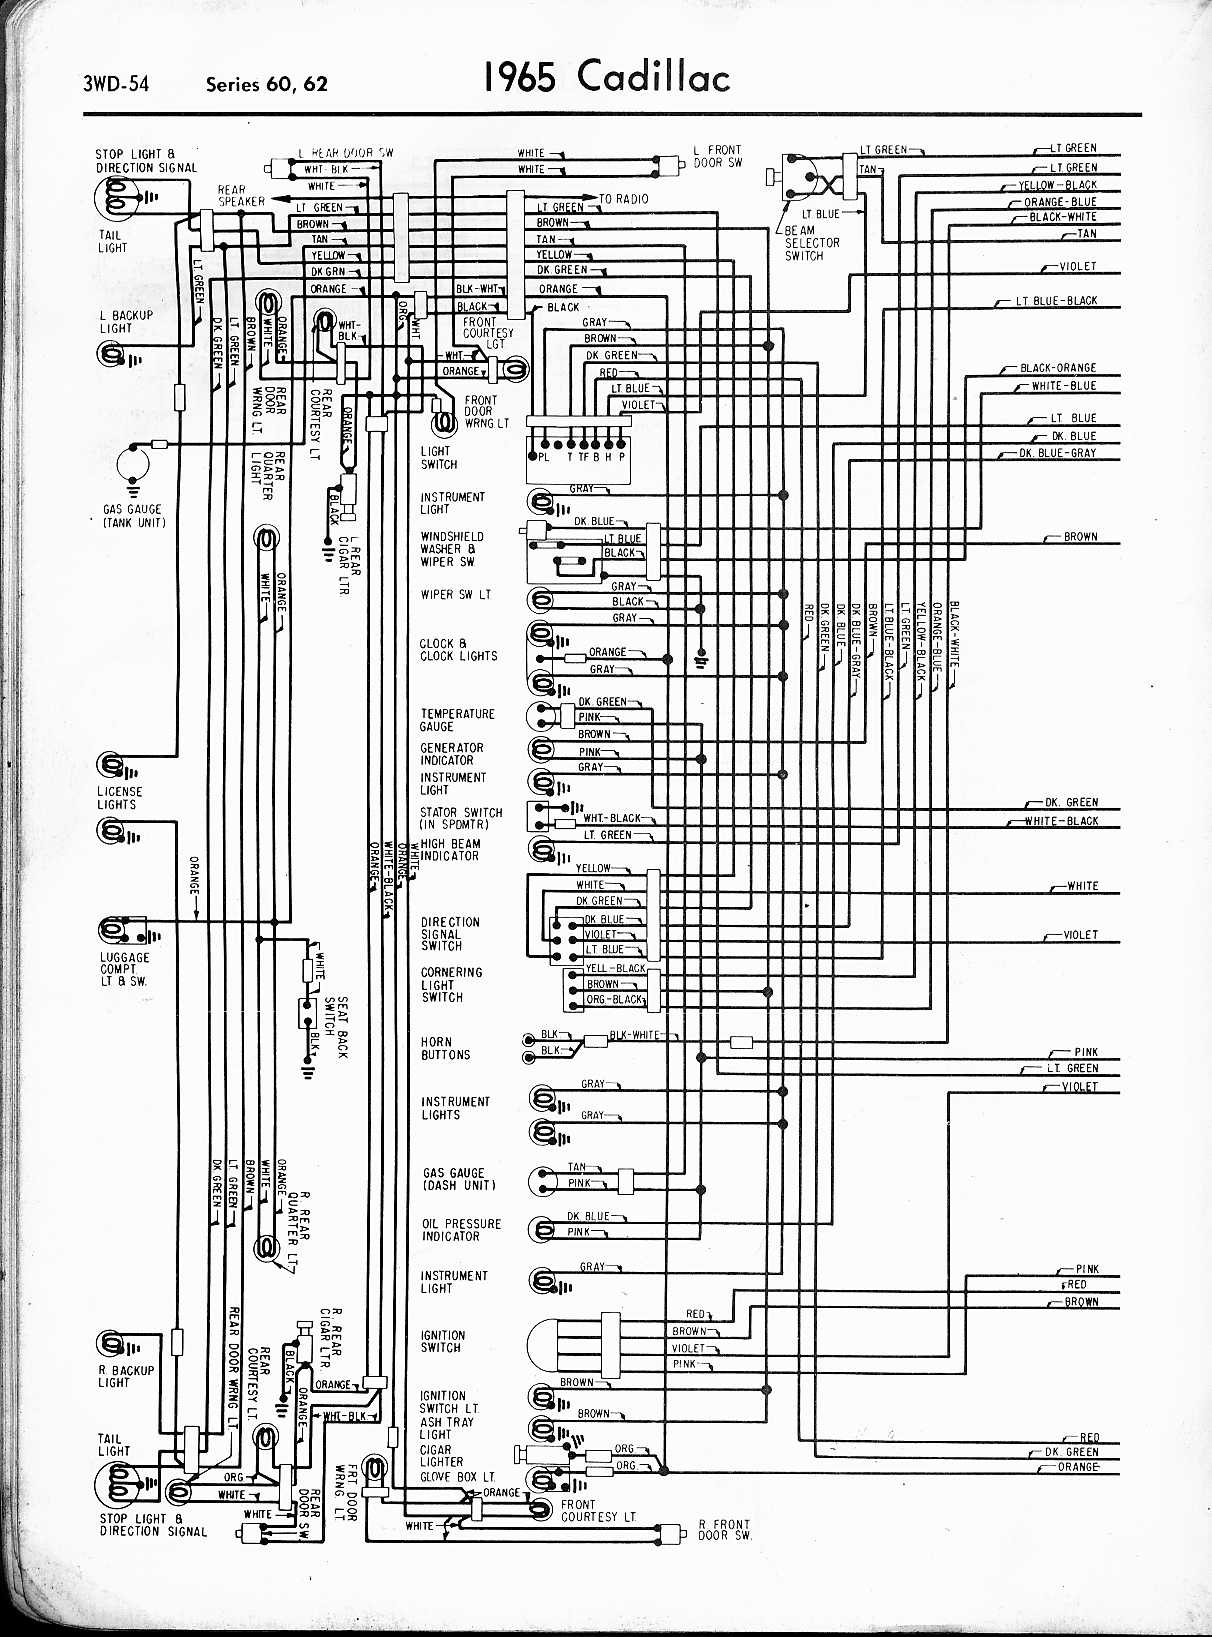 MWireCadi65_3WD 054 cadillac wiring diagrams 1957 1965 1984 Seville at n-0.co